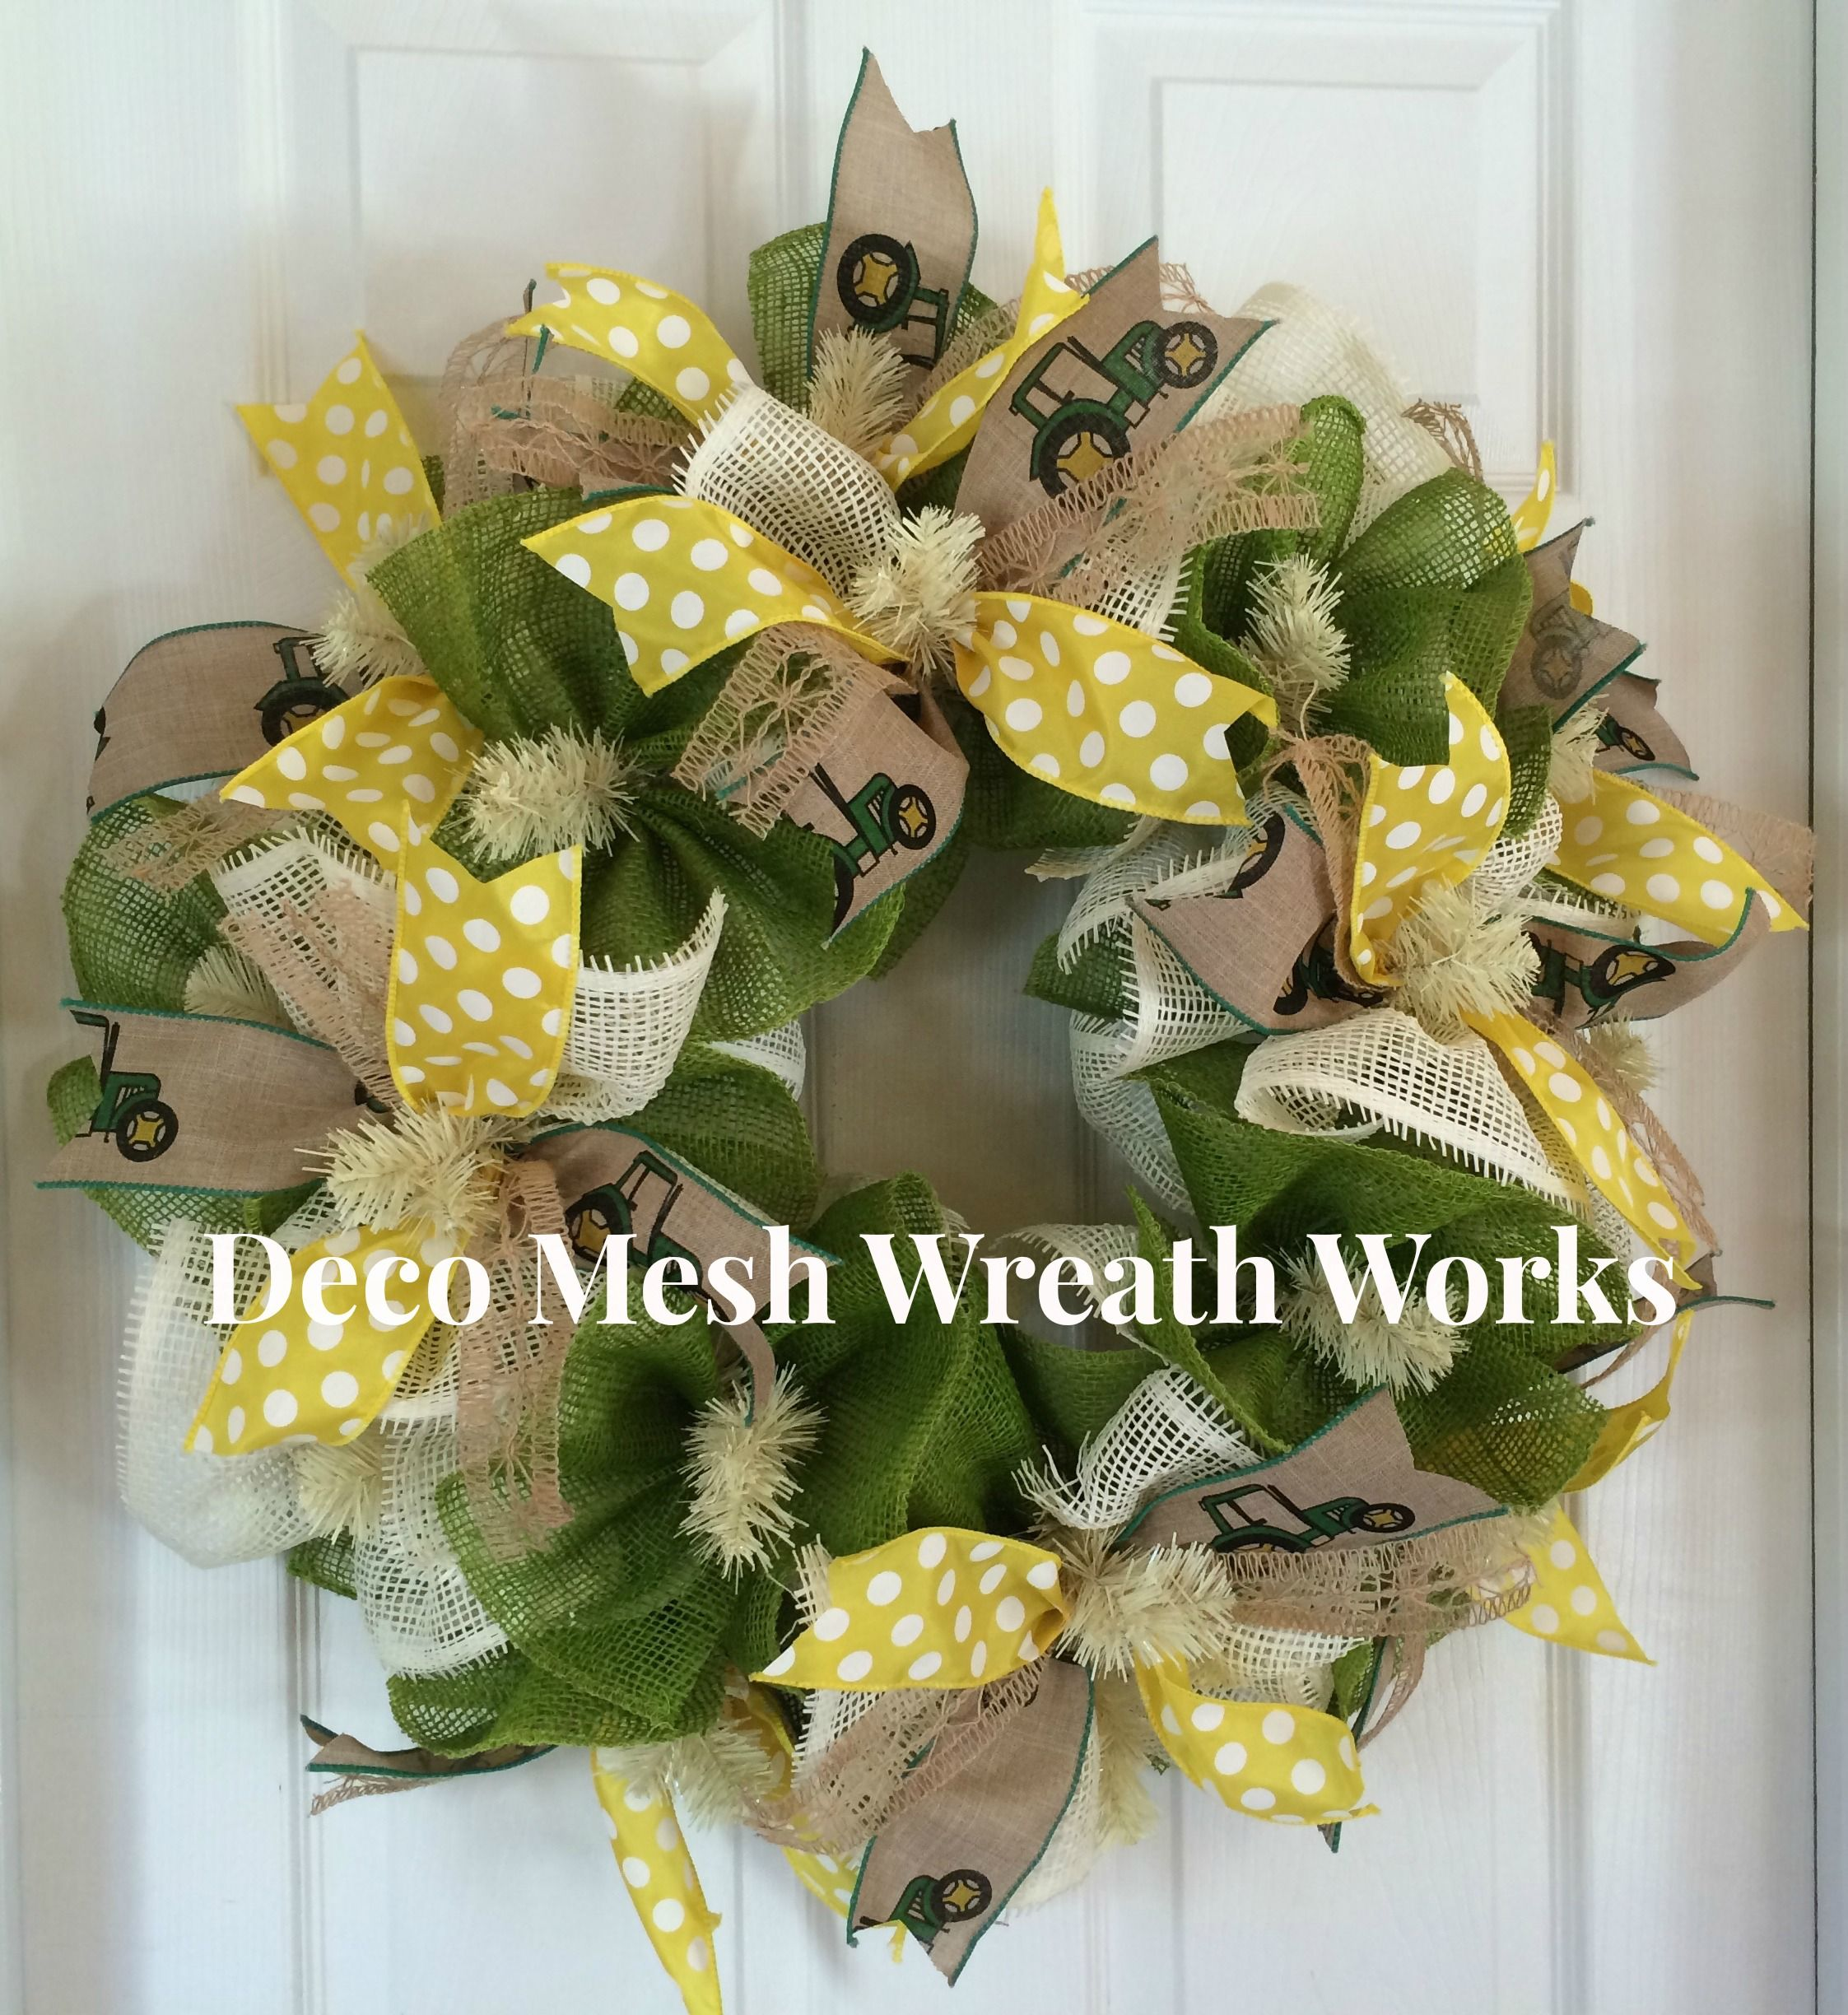 24 inch john deere inspired wreath made with woven paper mesh 24 inch john deere inspired wreath made with woven paper mesh ruffles and wired ribbons jeuxipadfo Image collections